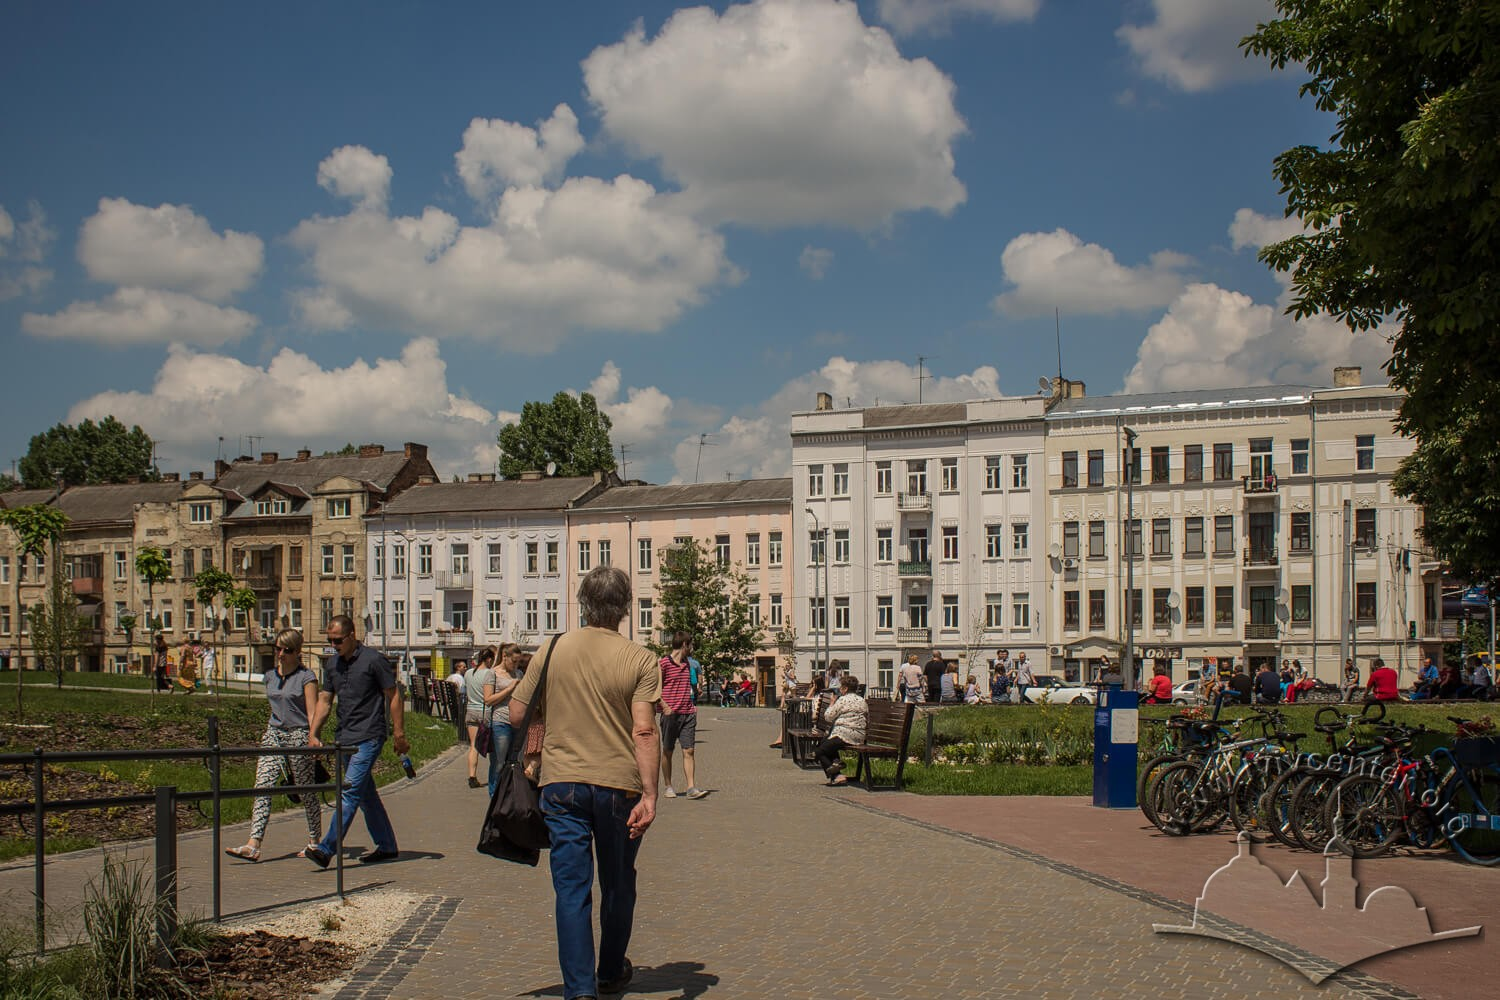 Vul. Pid Dubom. On the foreground, the square before the Forum trade center. In 19th century, Misionerska square was located here, and the city mead distillery was in the vicinity/Photo courtesy of Olha Zarechnyuk, 2016